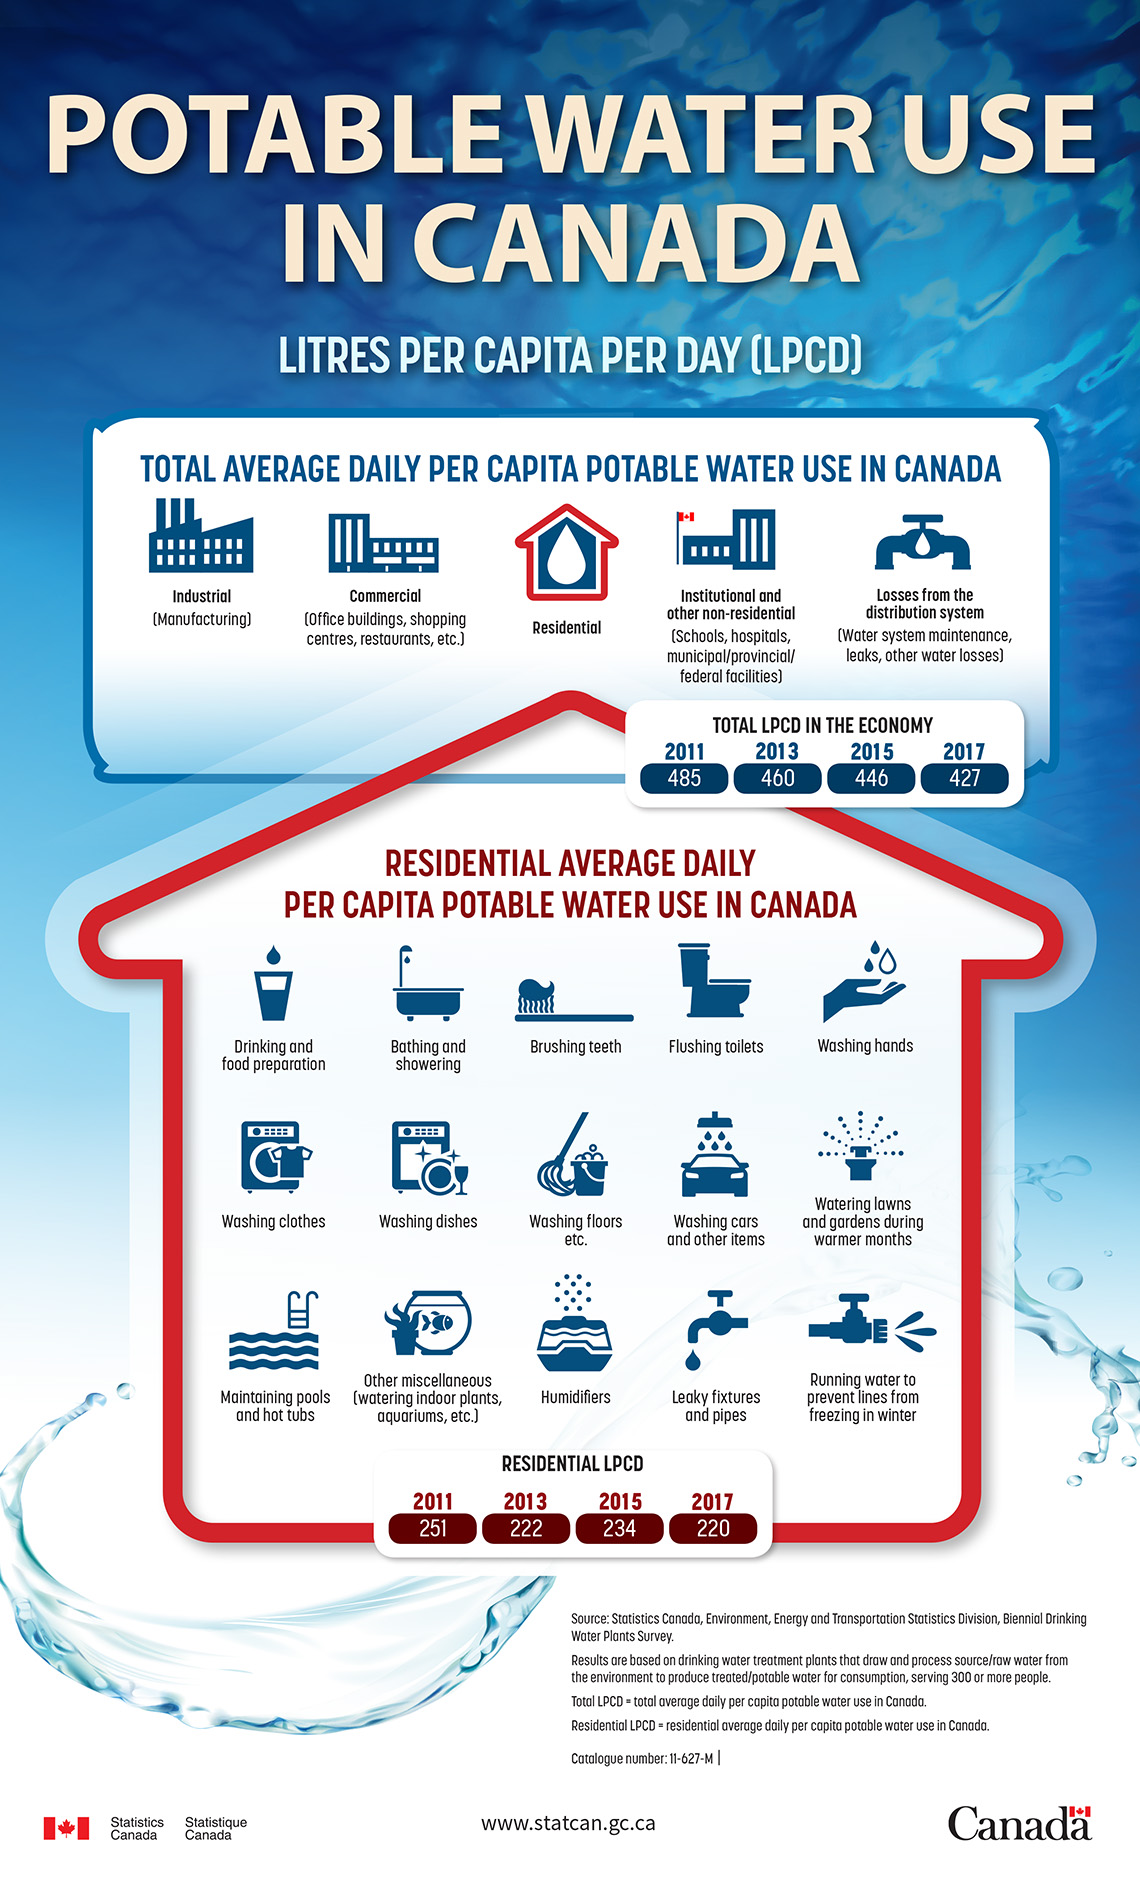 Potable water use in Canada